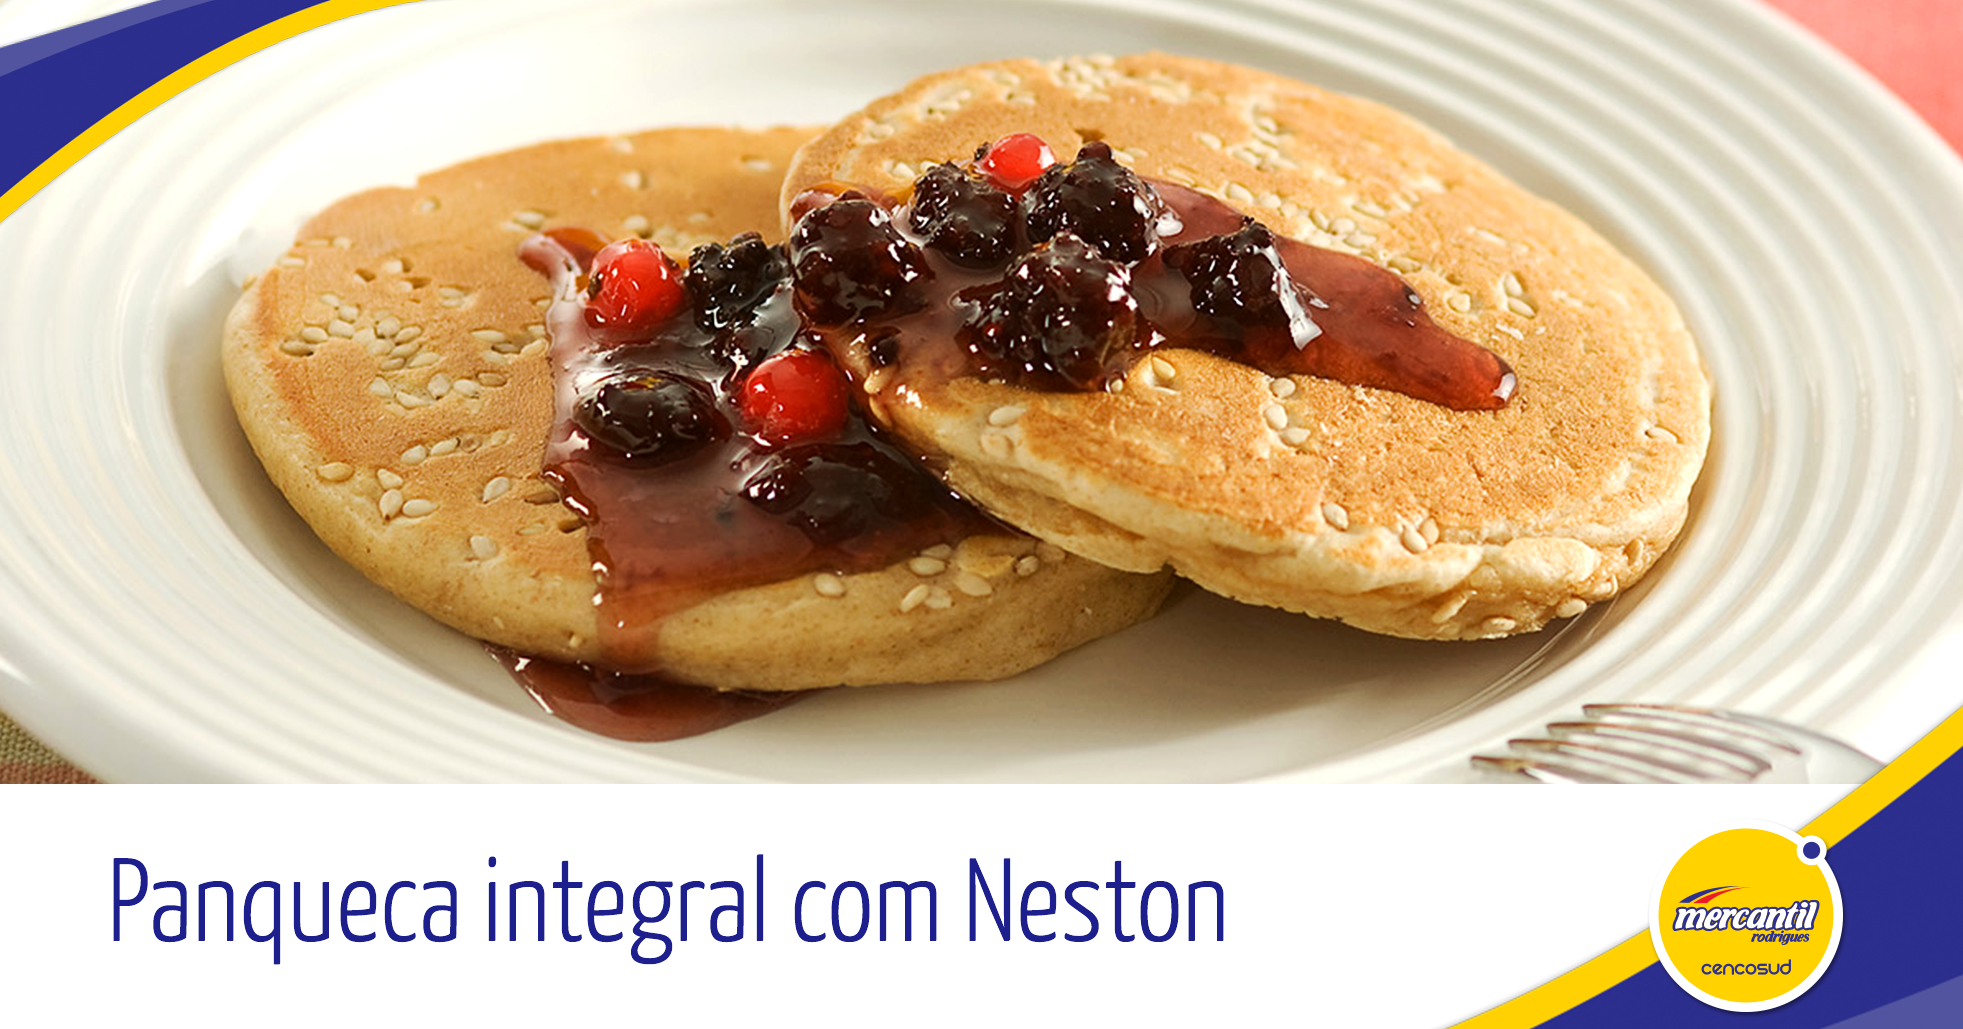 Panqueca integral com Neston